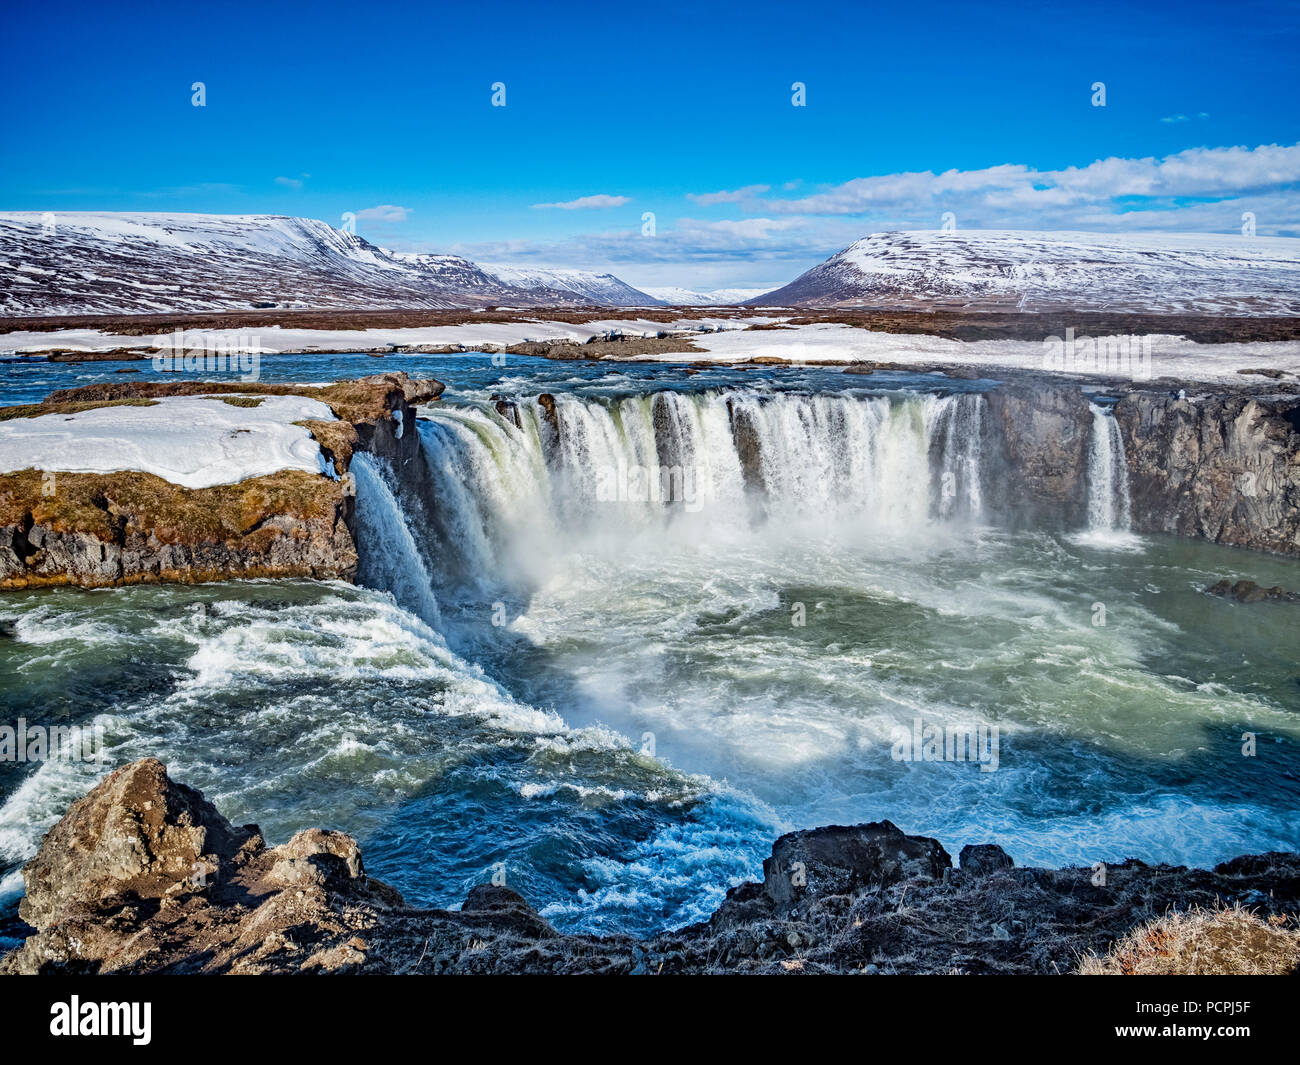 Godafoss, known as Waterfall of the Gods, a major tourist attraction in Iceland. - Stock Image